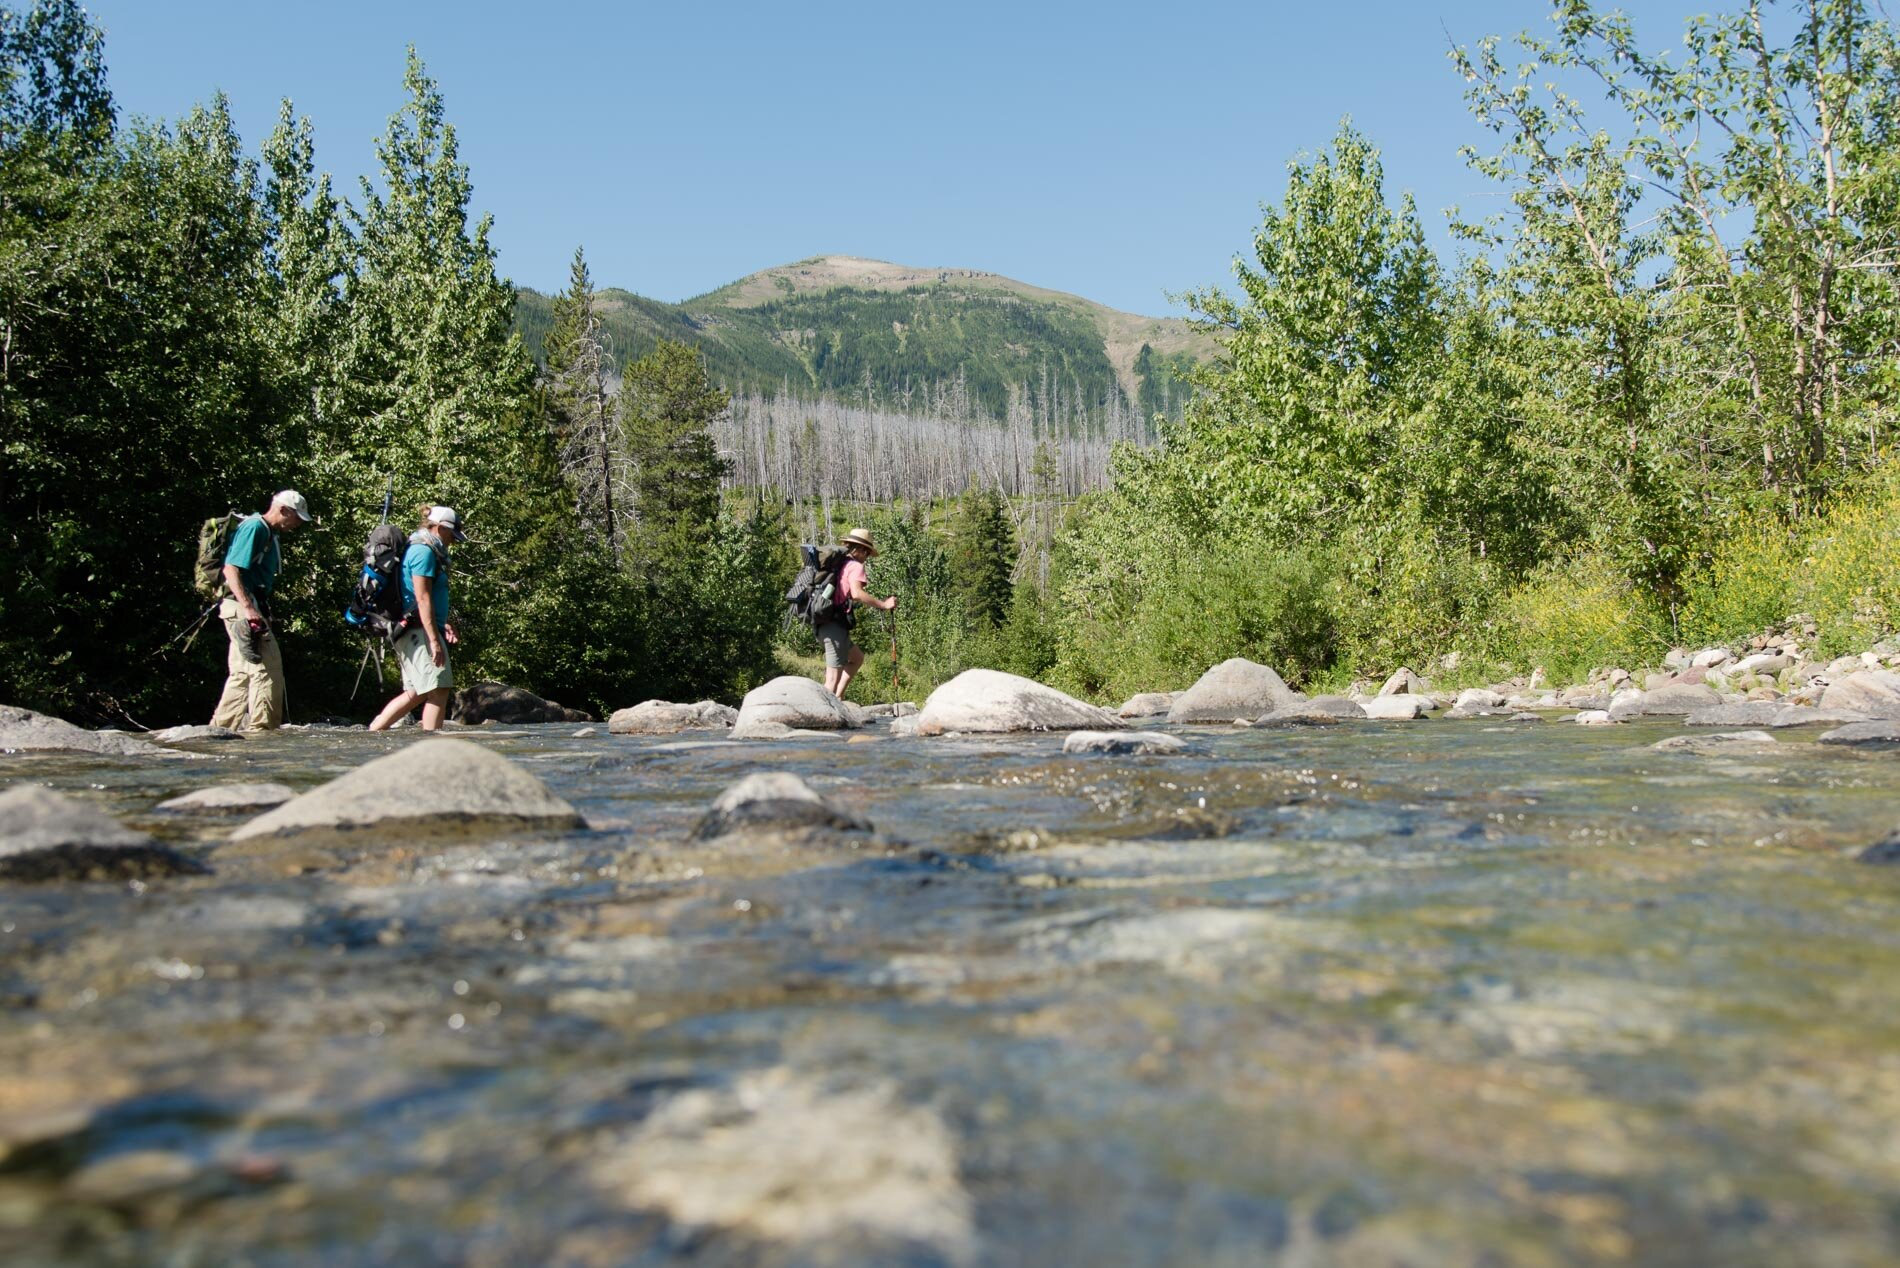 Hikers cross the South Fork of the Two Medicine river. Help protect this remarkable landscape with a gift today!